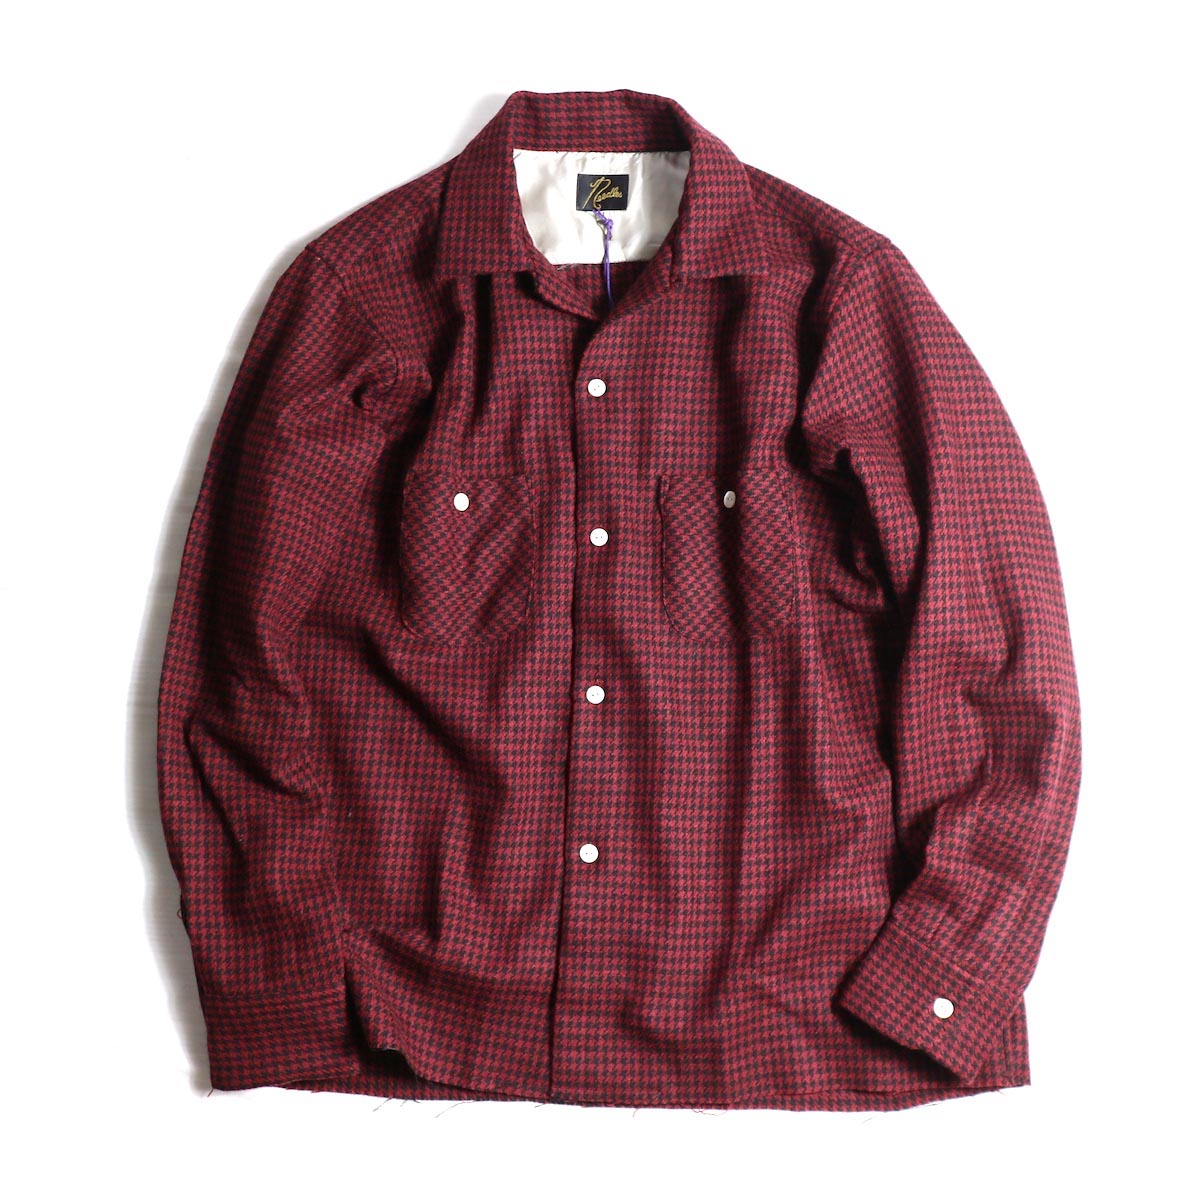 NEEDLES / CUT-OFF BOTTOM ONE-UP SHIRT (RED)